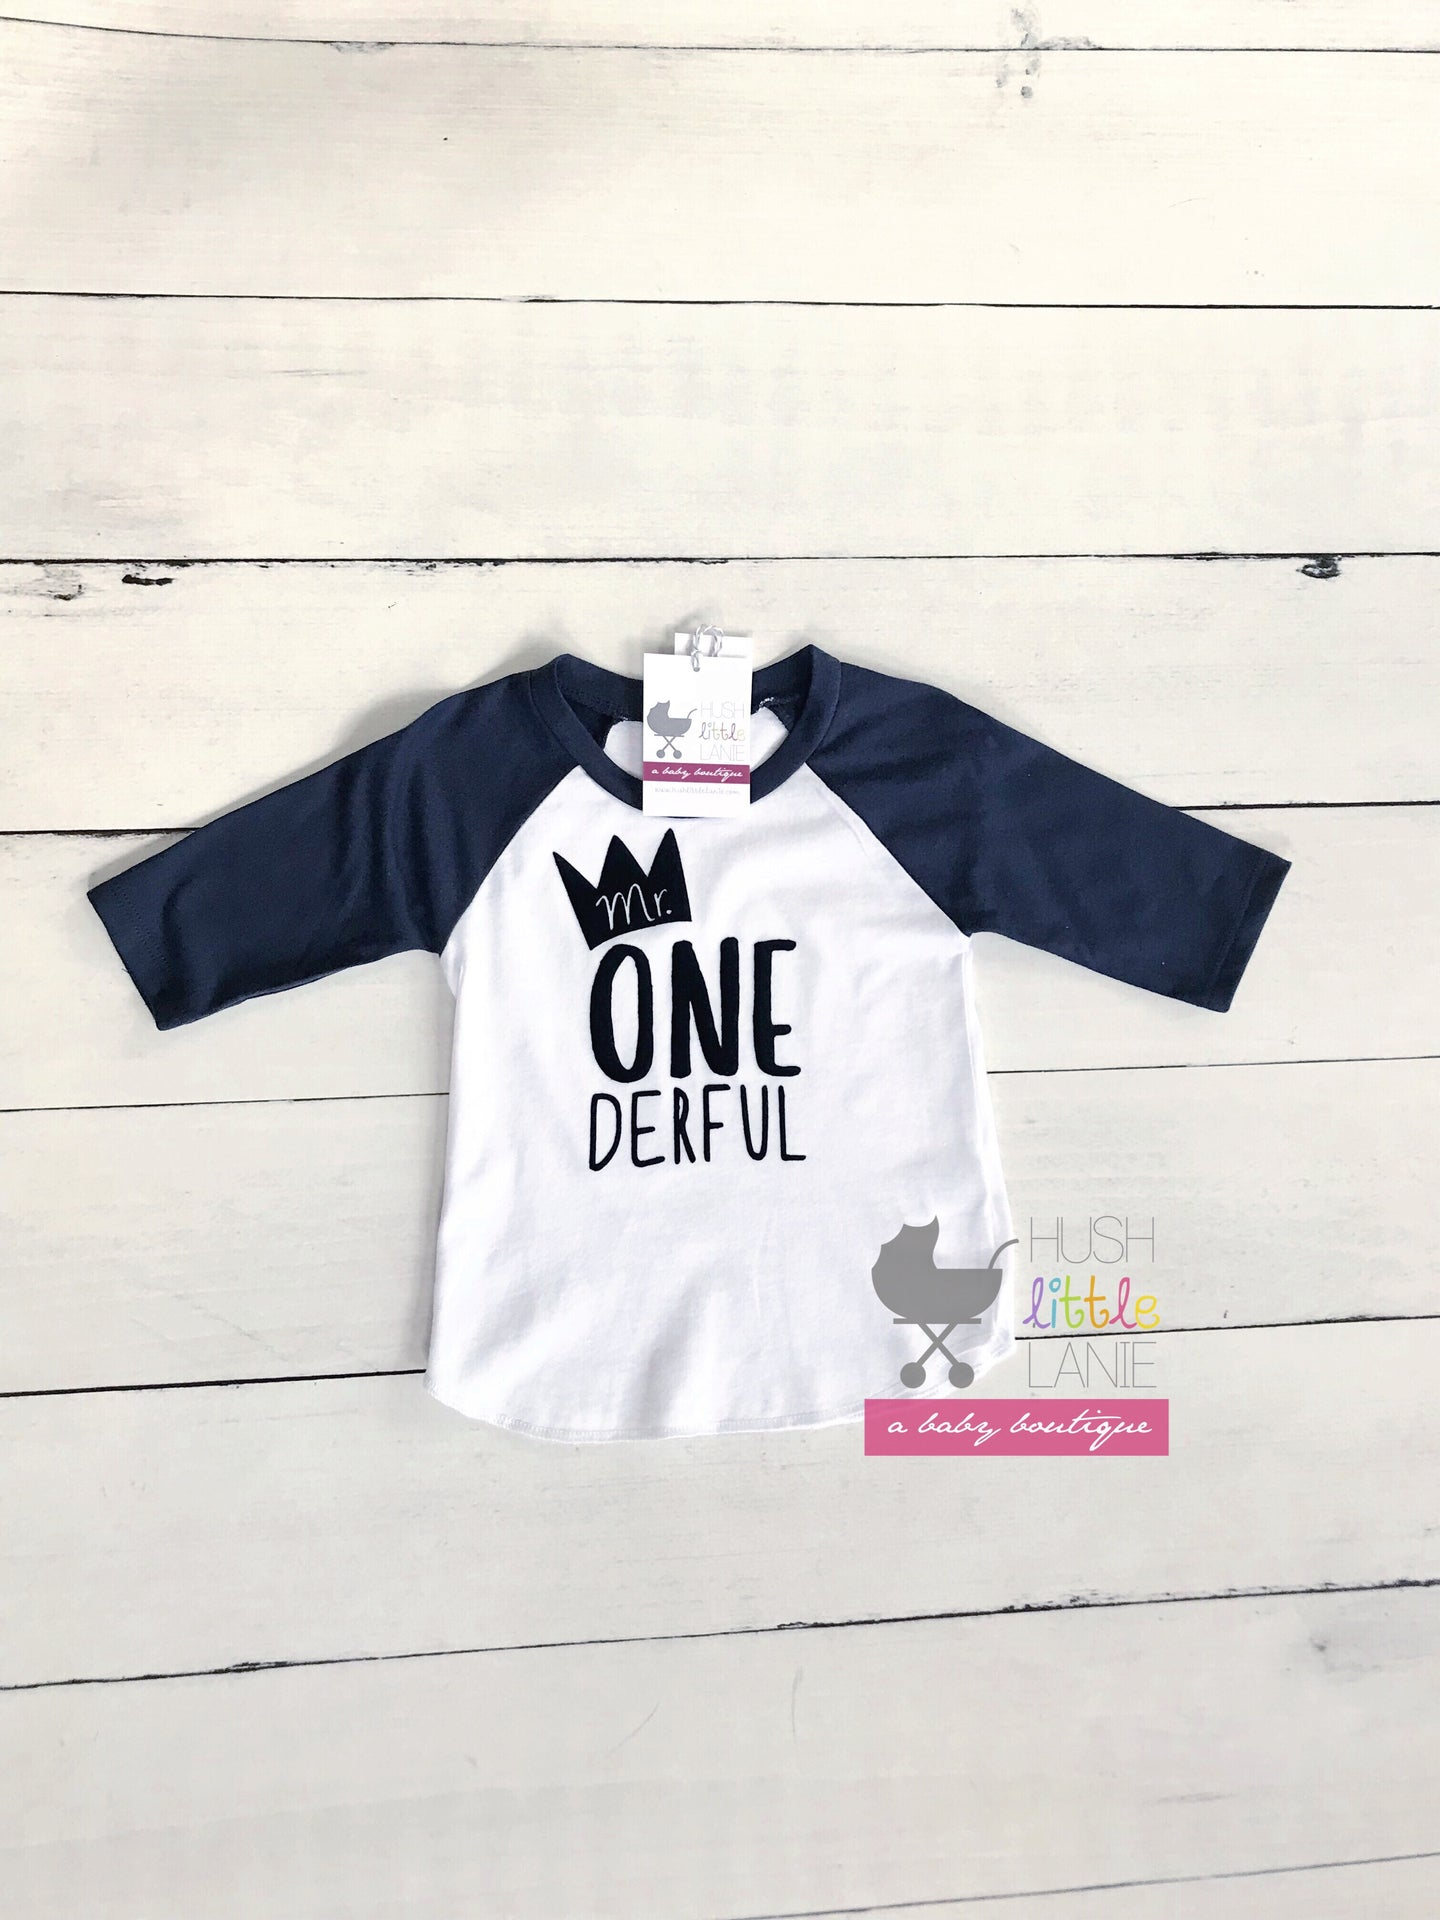 {SHIRT} Mr. One-derful Raglan (White w/ navy sleeves)